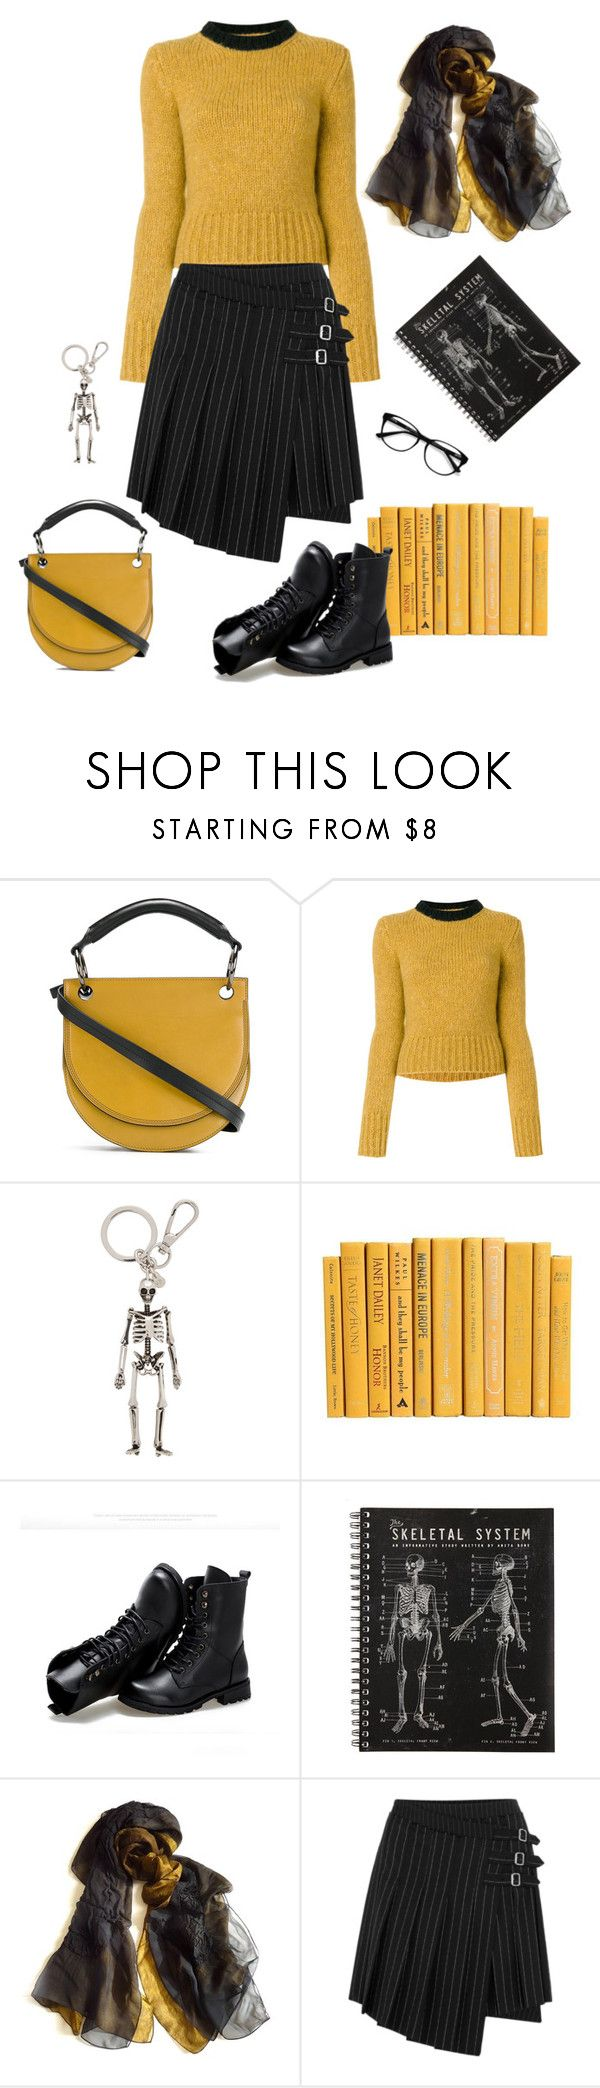 """""""to the bone"""" by ms-wednesday-addams ❤ liked on Polyvore featuring Marni, Alexander McQueen, Sunsteps, Yuh Okano, McQ by Alexander McQueen and EyeBuyDirect.com"""